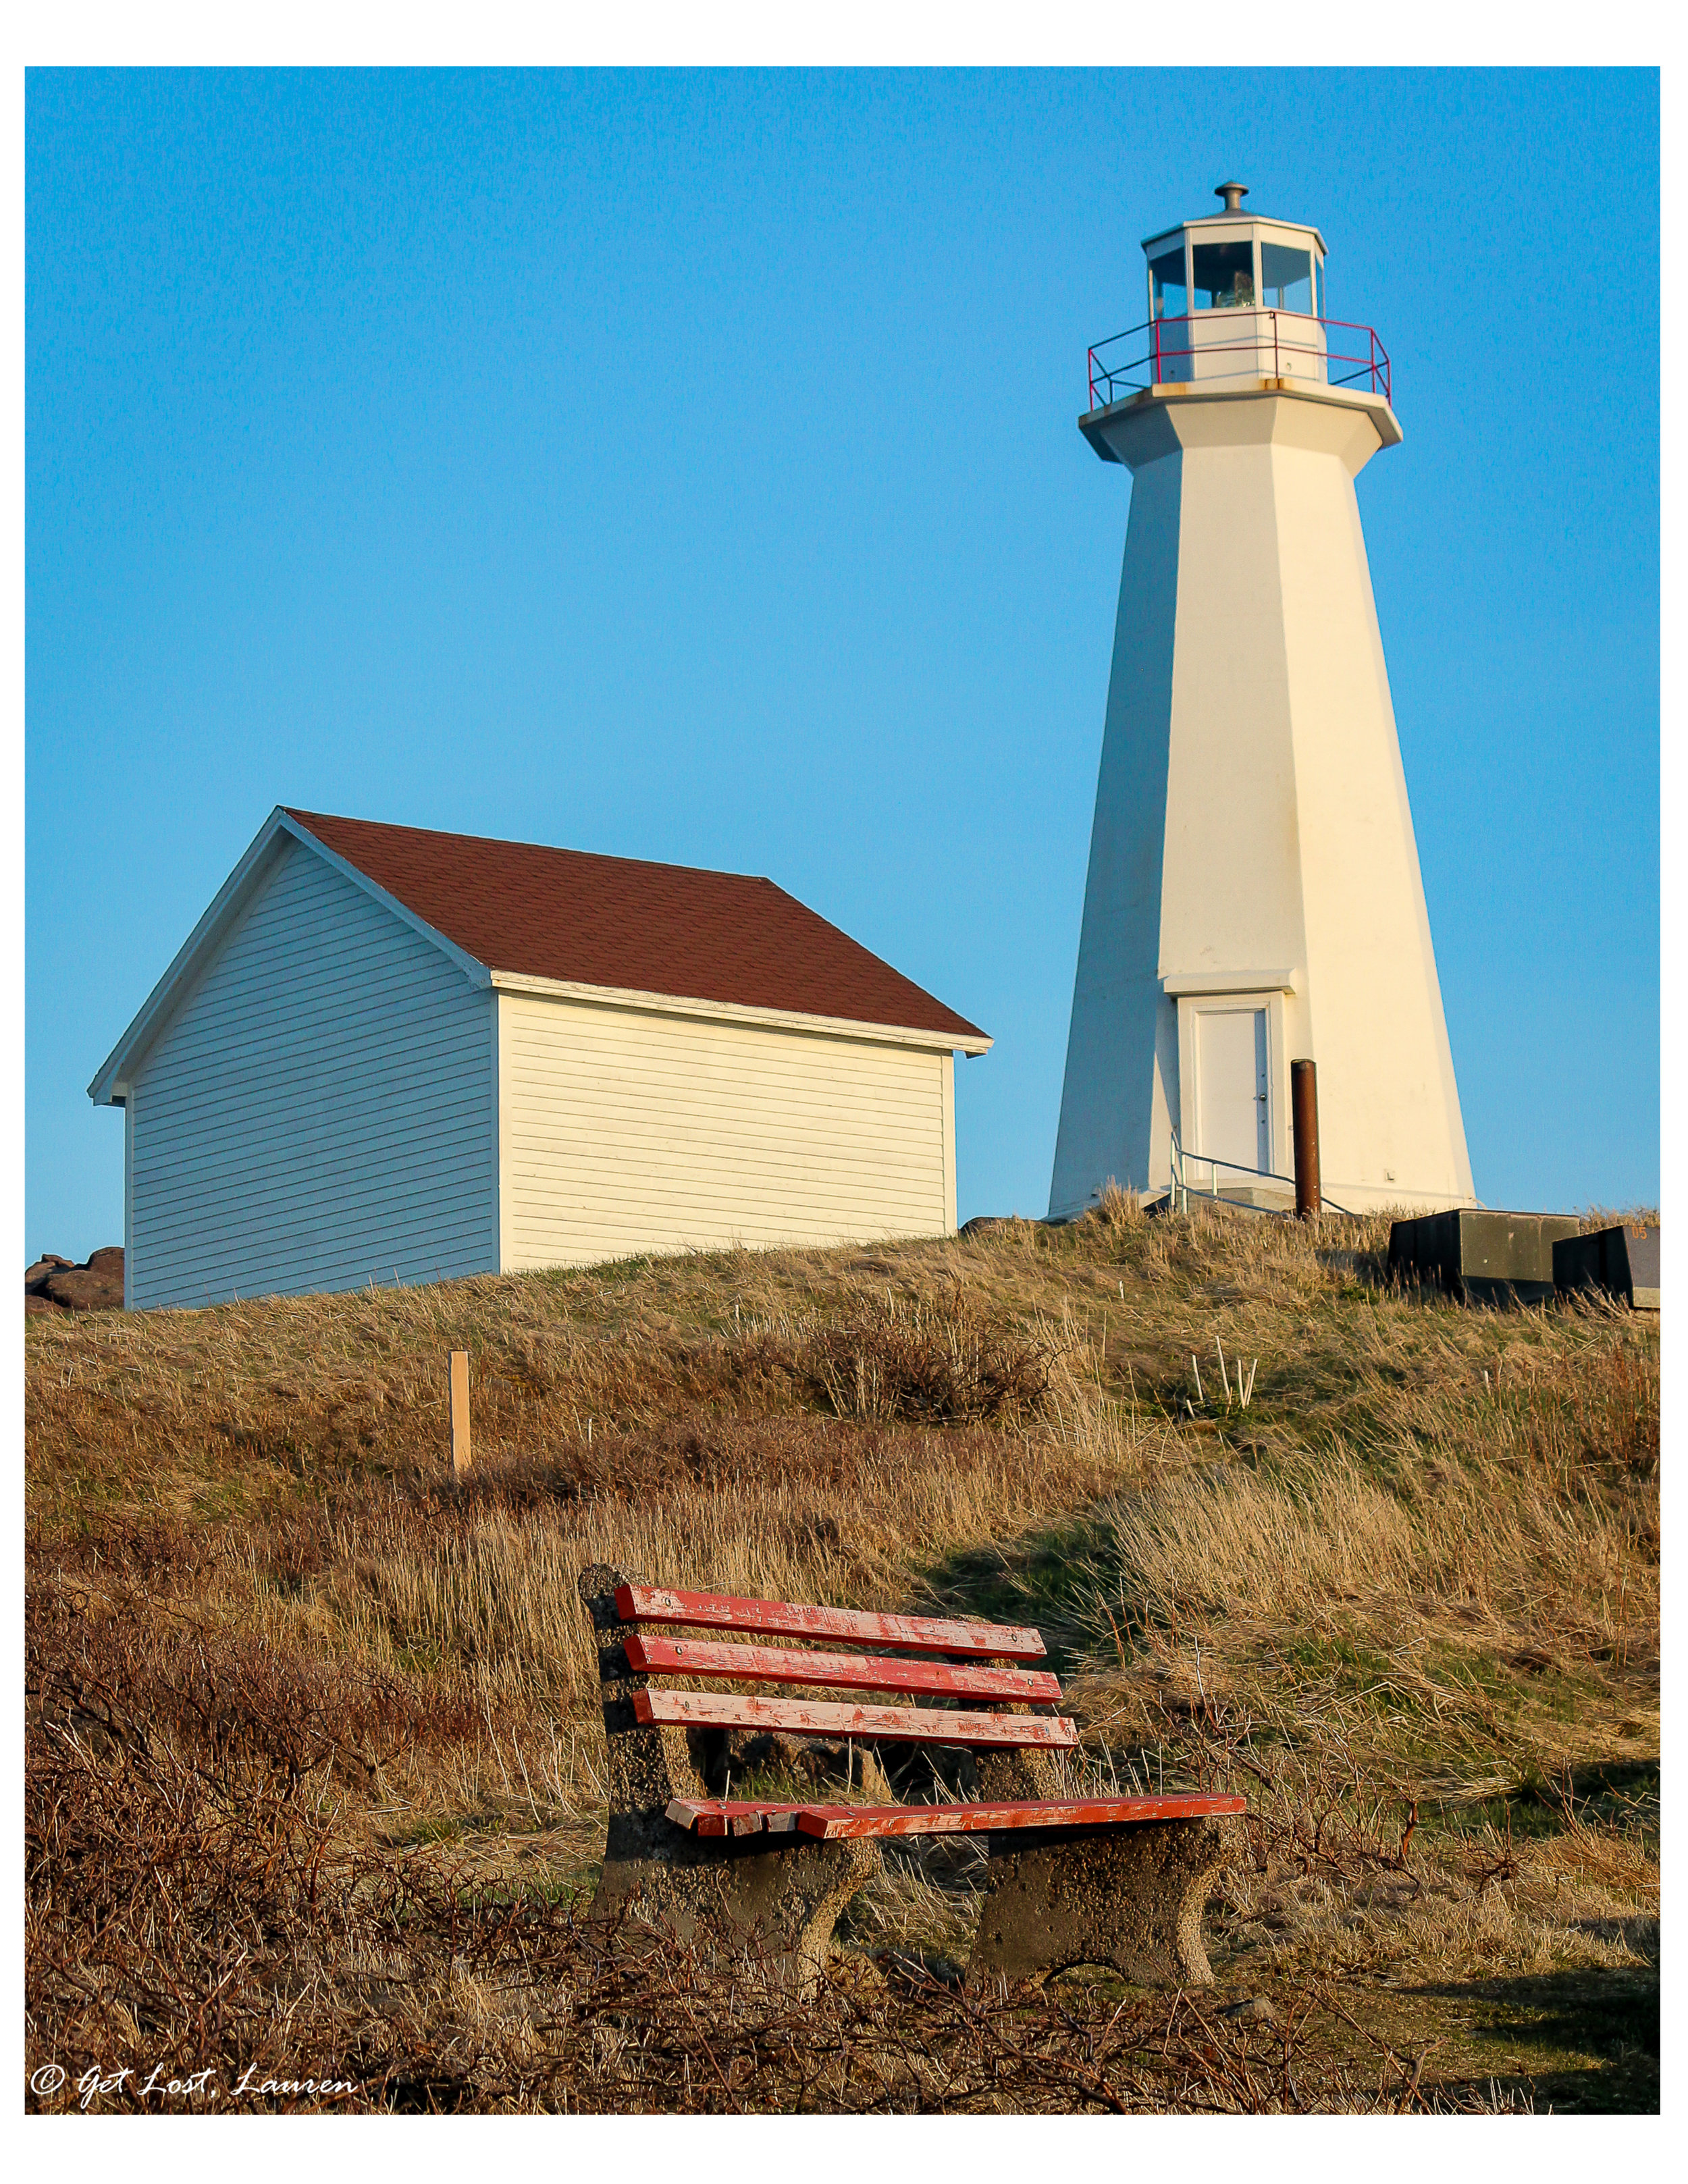 The lighthouse at Cape Spear, North America's most easterly point.